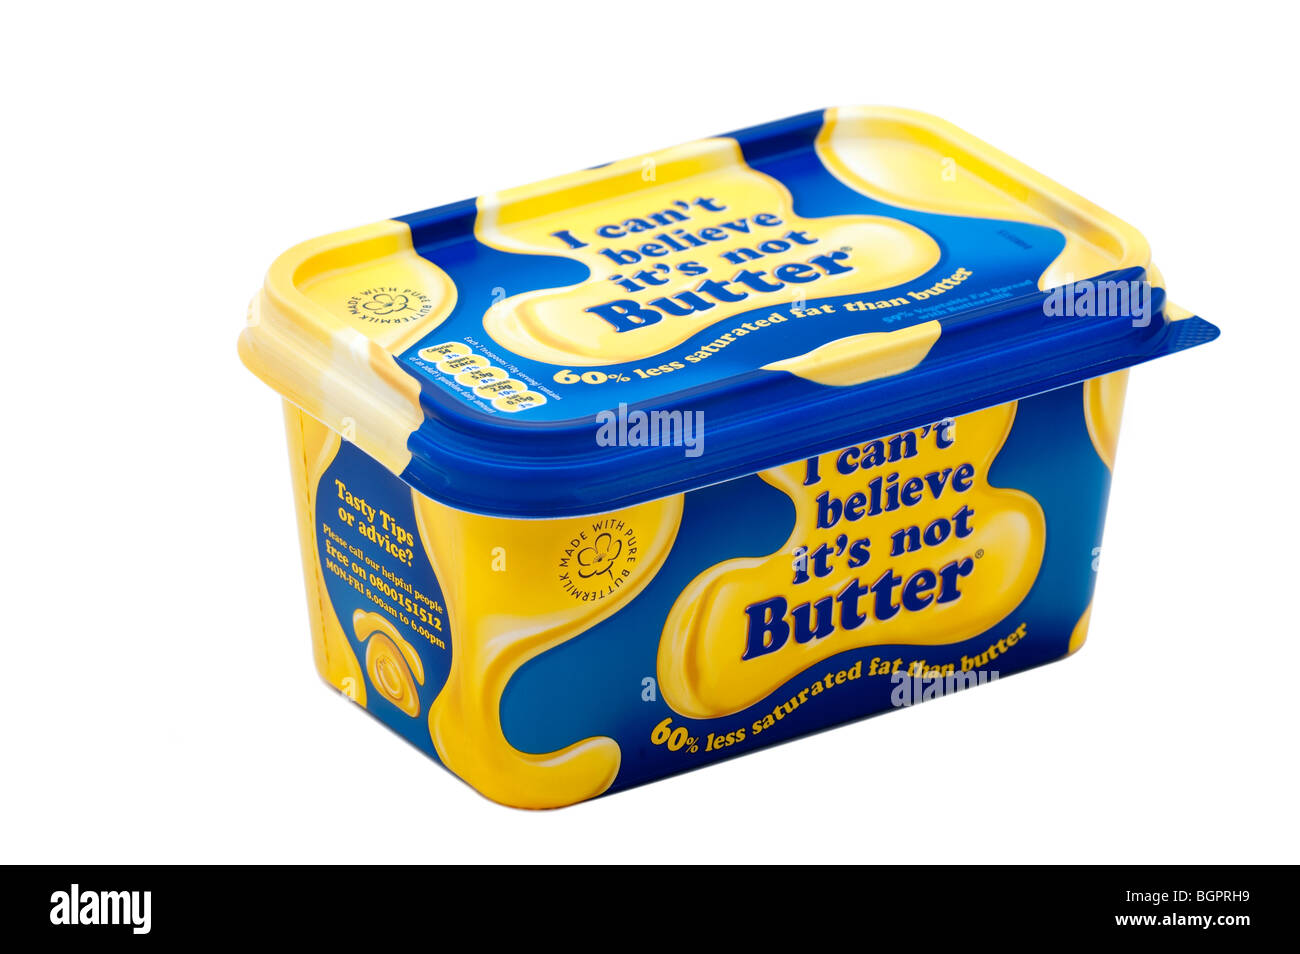 500 gram tub of' I Can't believe its not butter' margarine - Stock Image